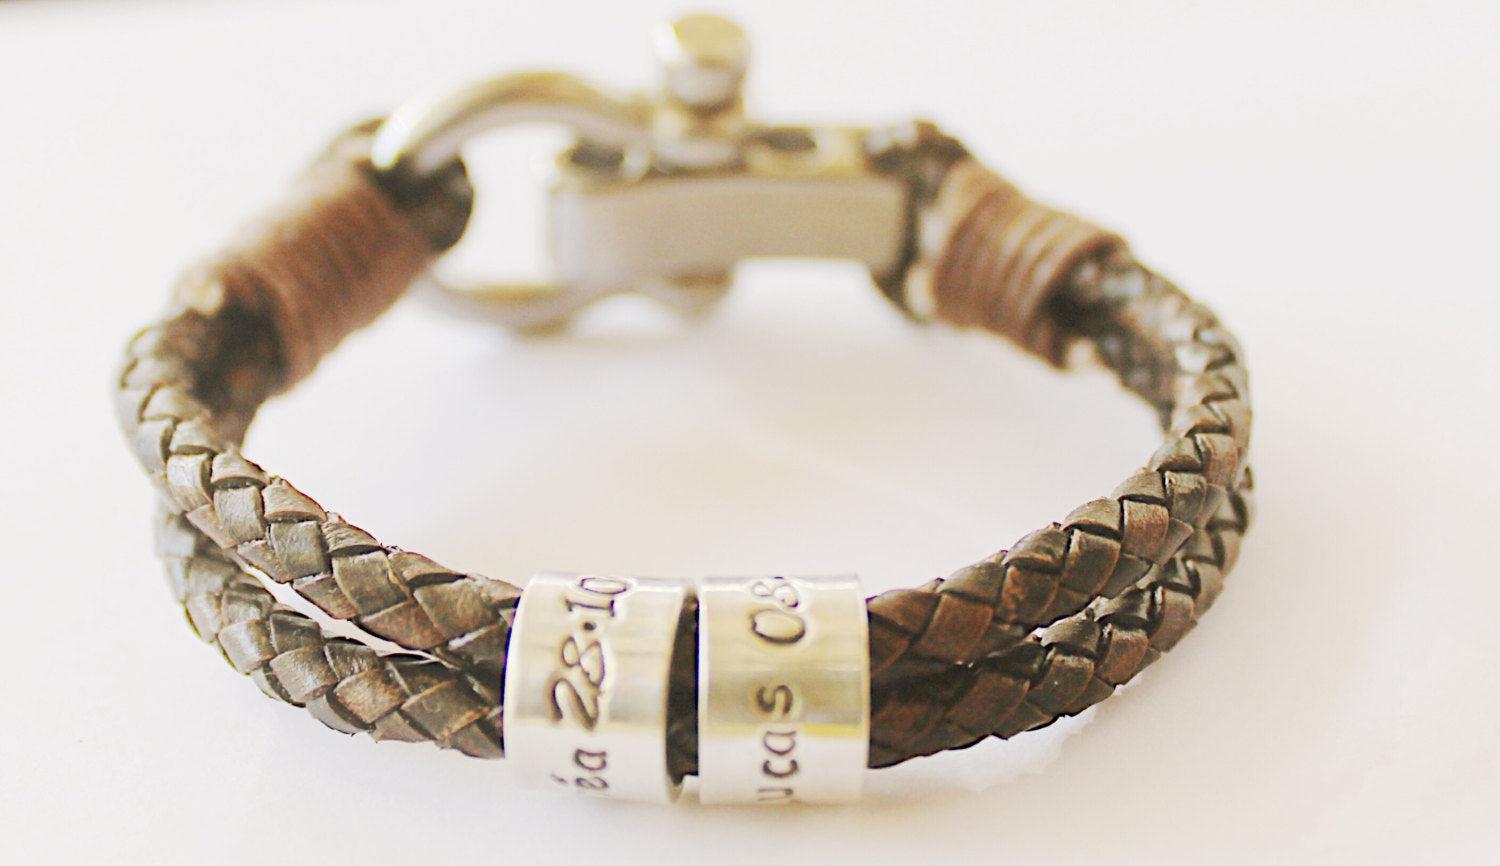 Fathers Day Gift ,Mens Leather Bracelet, personalised Bracelet for Men, Gifts gor Men, Custom Bracelet, Engraved Leather Bracelet